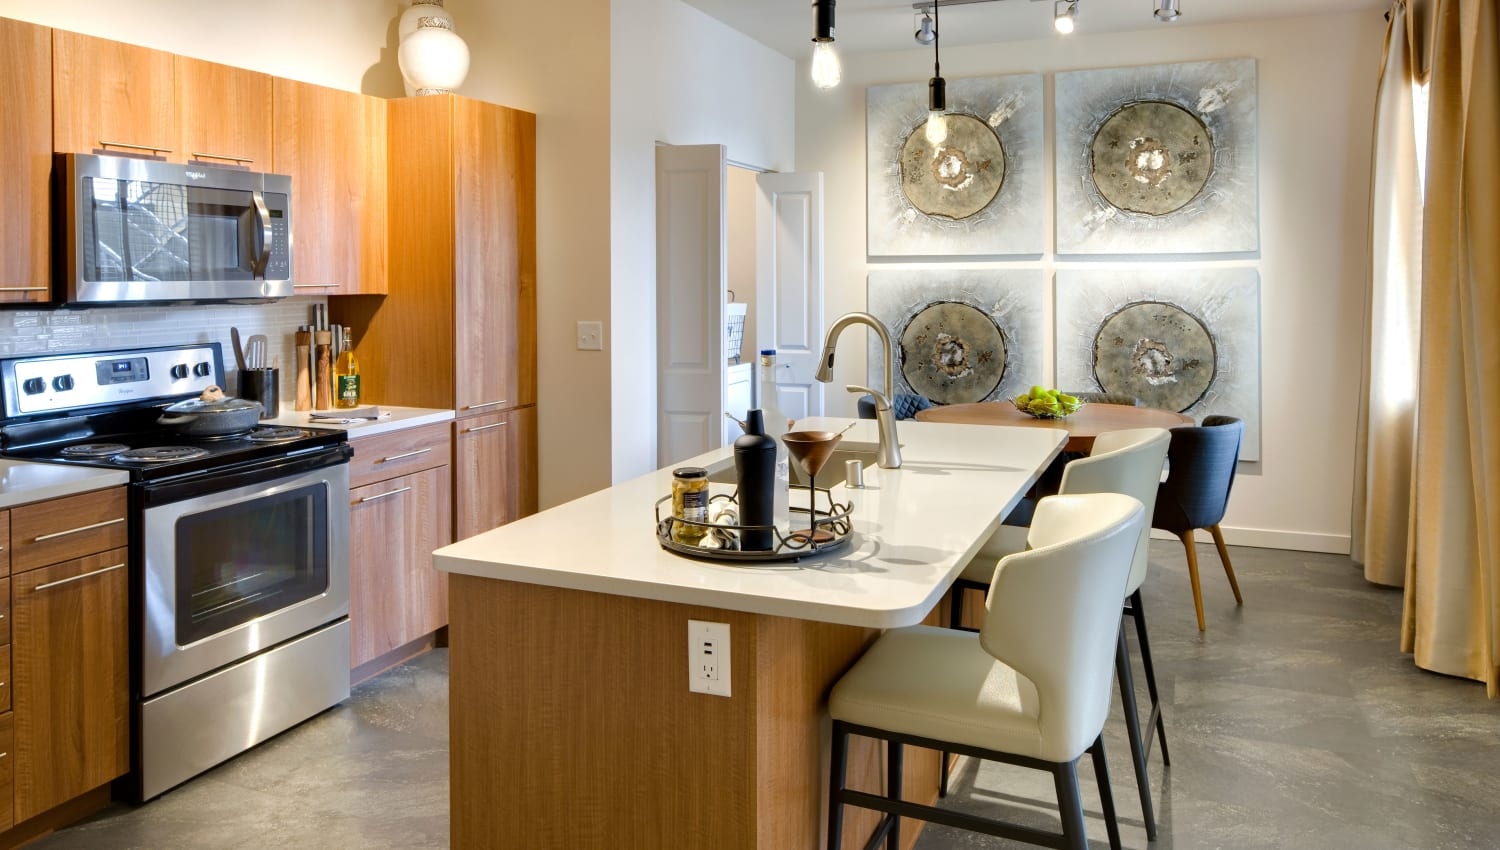 Well-equipped kitchen with quartz countertops at Olympus Alameda in Albuquerque, New Mexico